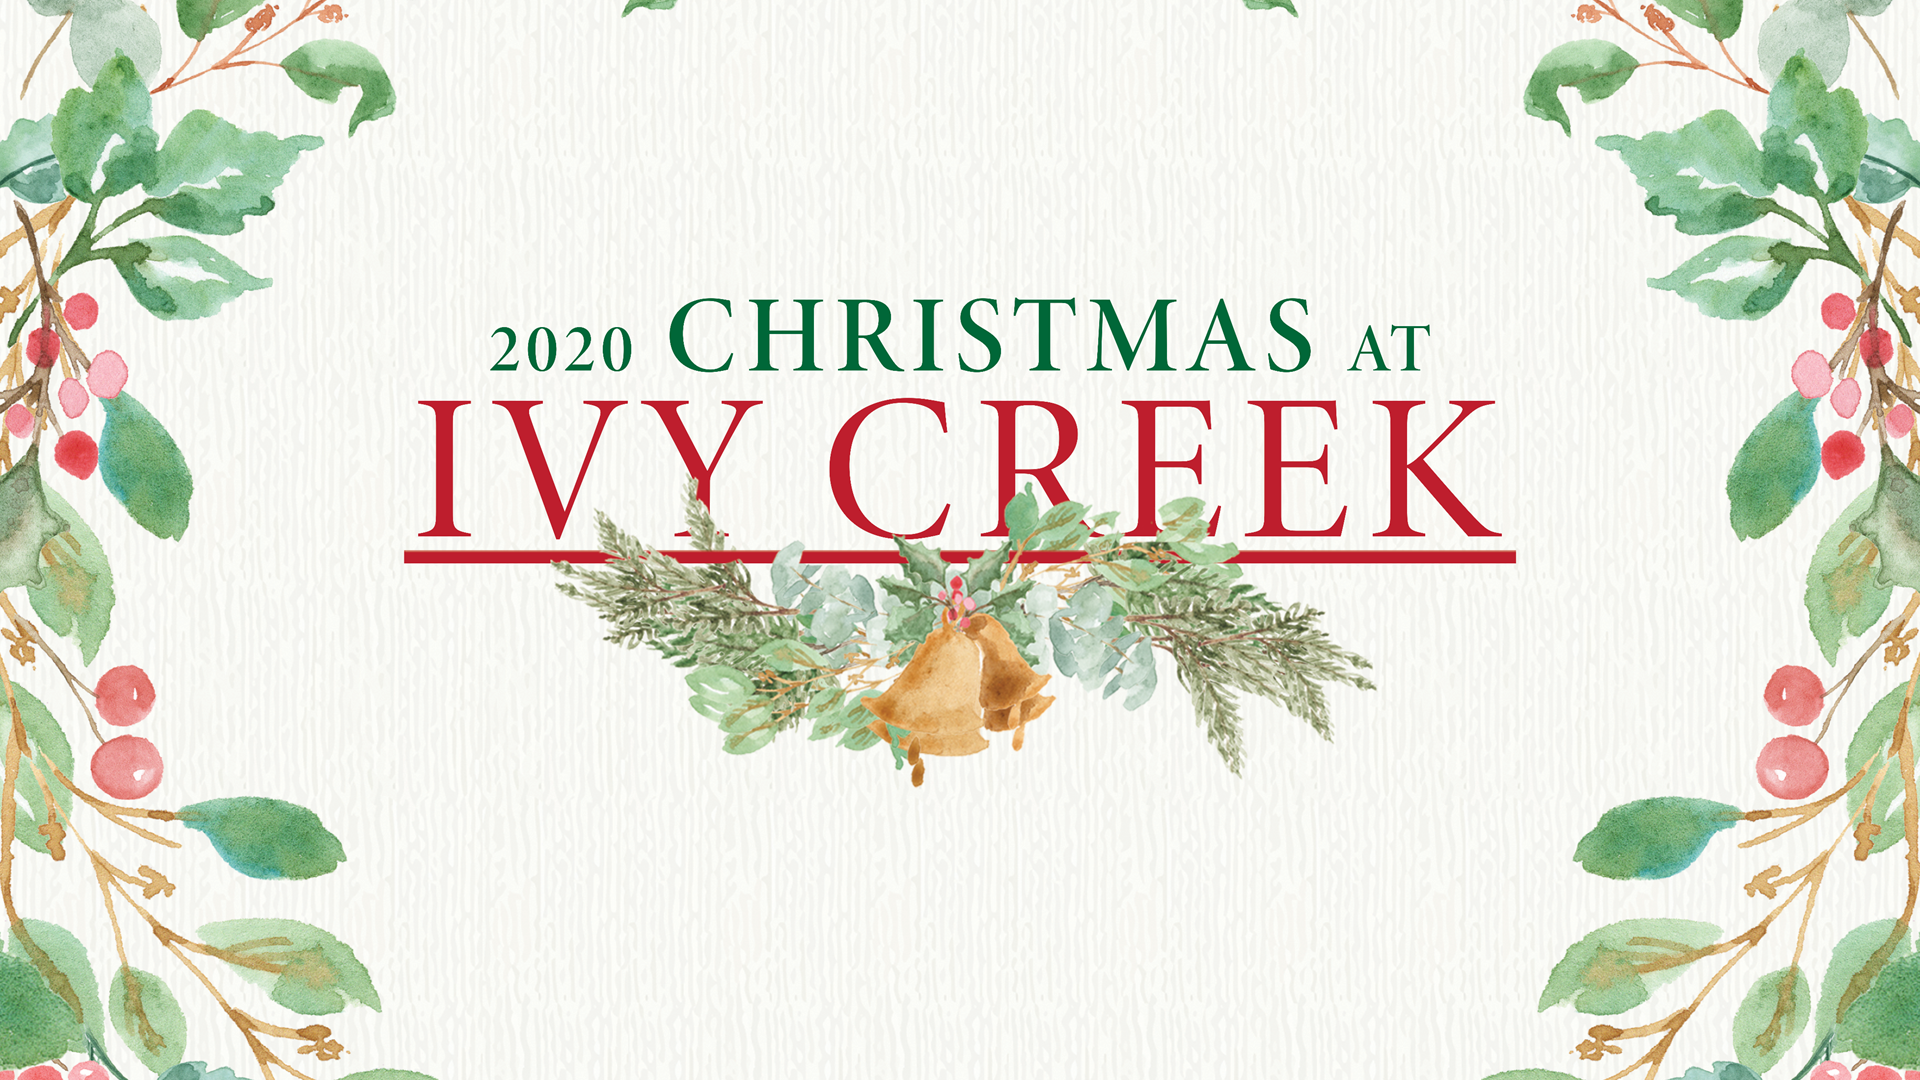 Choosing an All-Virtual Christmas at Ivy Creek